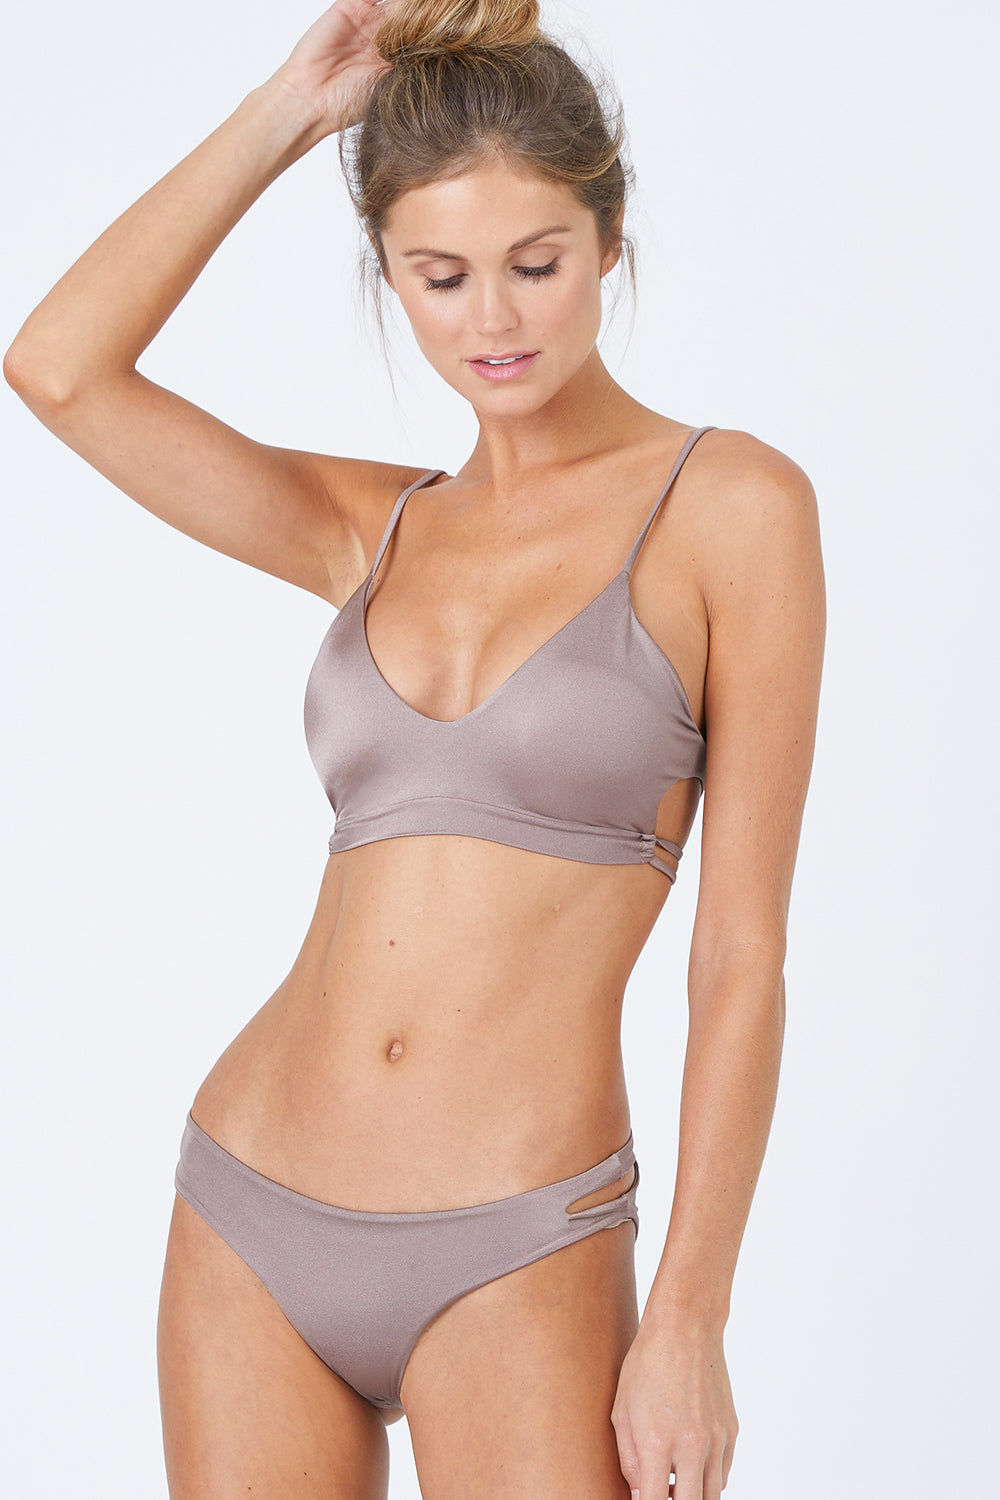 MALAI Pacific Cut Out Bralette Bikini Top - Sparkly Taupe Bikini Top | Sparly Taupe| Malai Pacific Cut Out Bralette Bikini Top - Sparly Taupe. Features:  Bralette bikini top Adjustable straps Removable padding Cutout side detail Front View